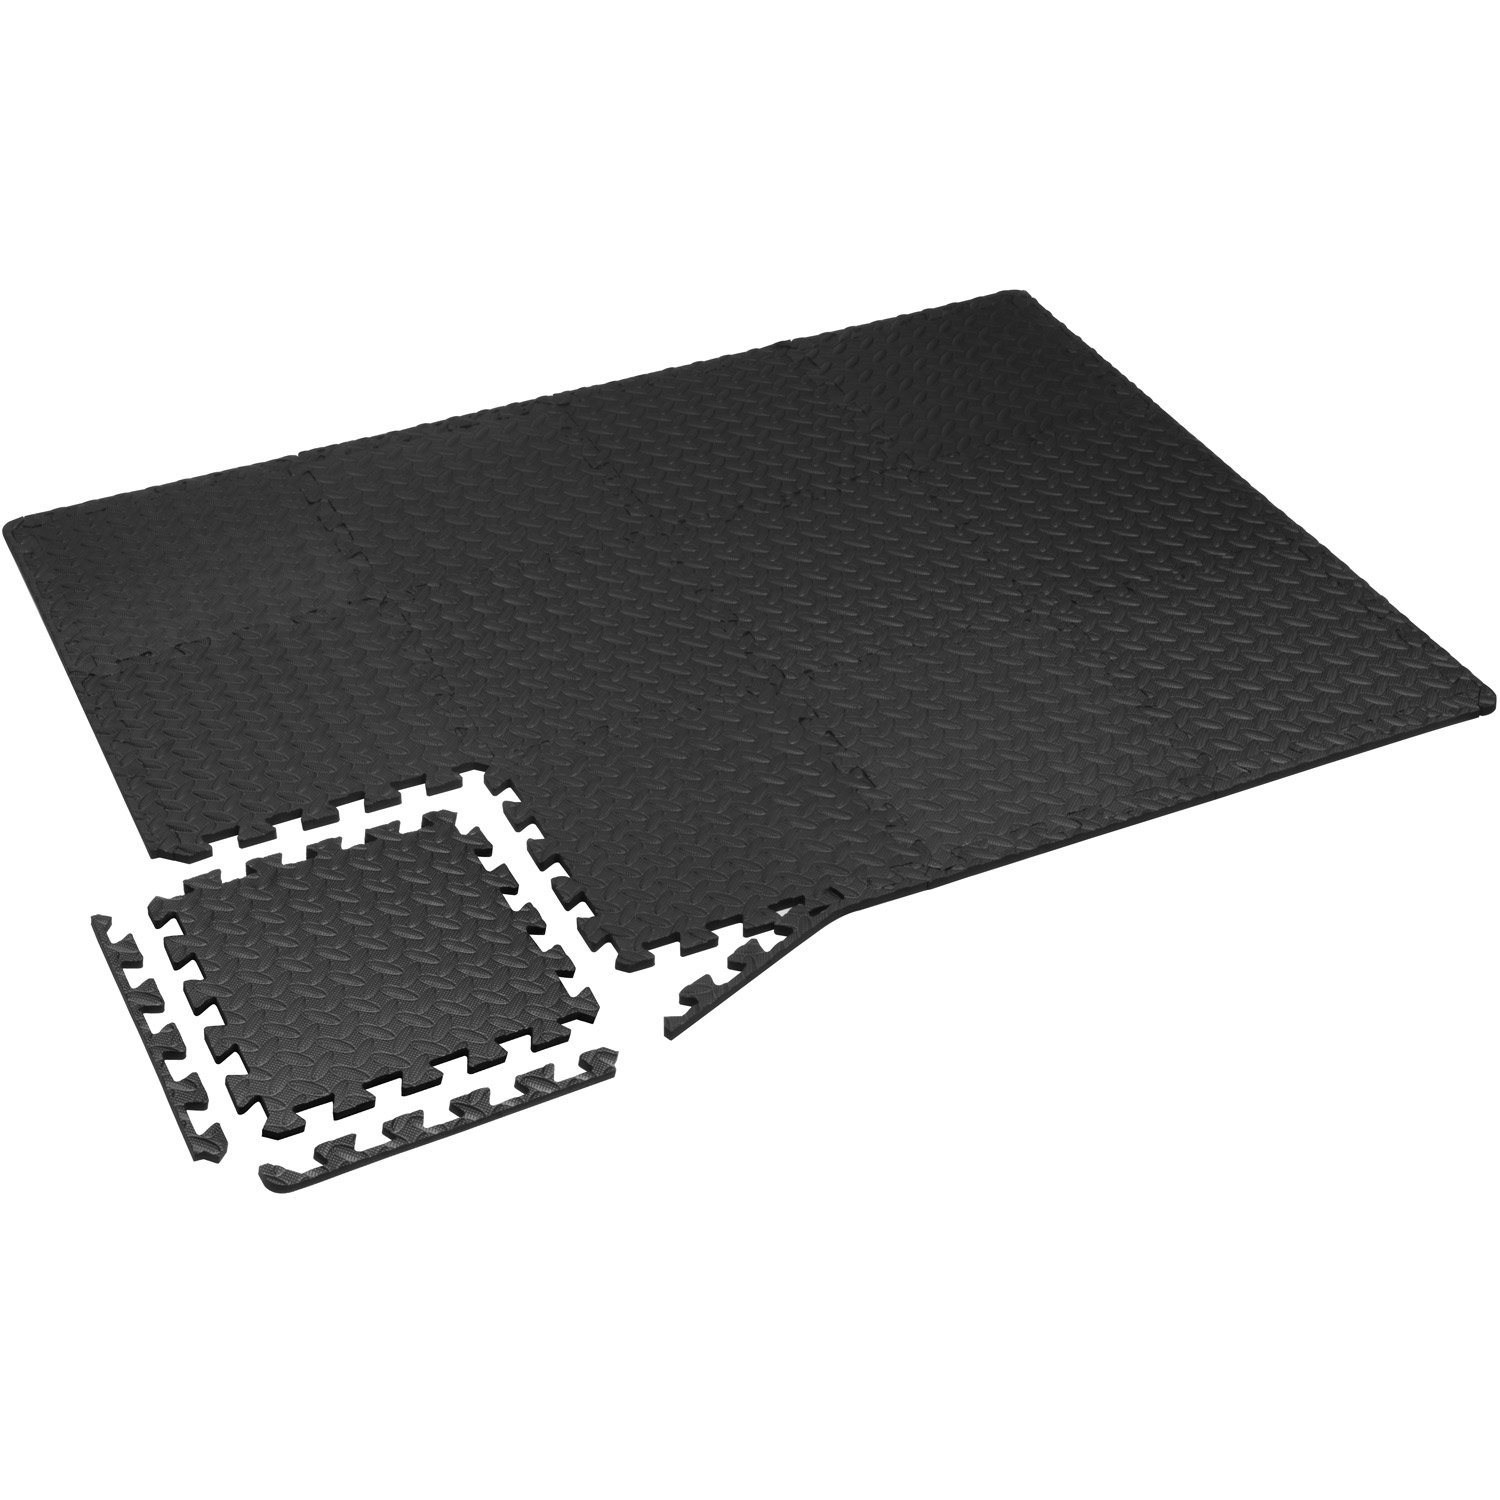 Yes4All Interlocking Exercise Foam Mats with Border – Interlocking Floor Mats for Gym Equipment – Eva Interlocking Floor Tiles (12 Square Feet, Black) by Yes4All (Image #5)